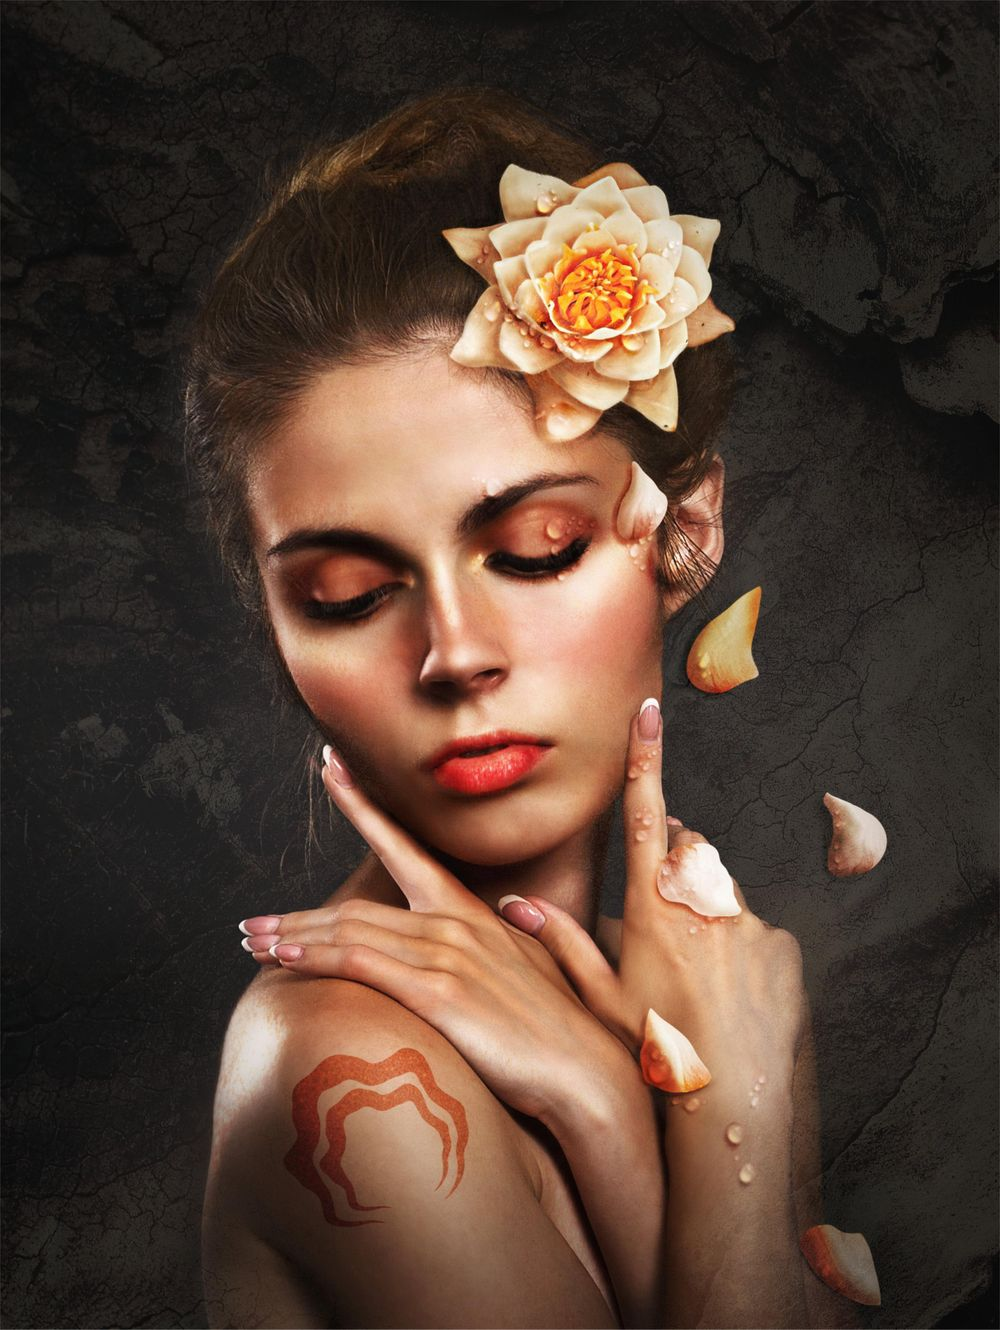 Editing a surrealistic portrait in affinity photo - image 1 - student project